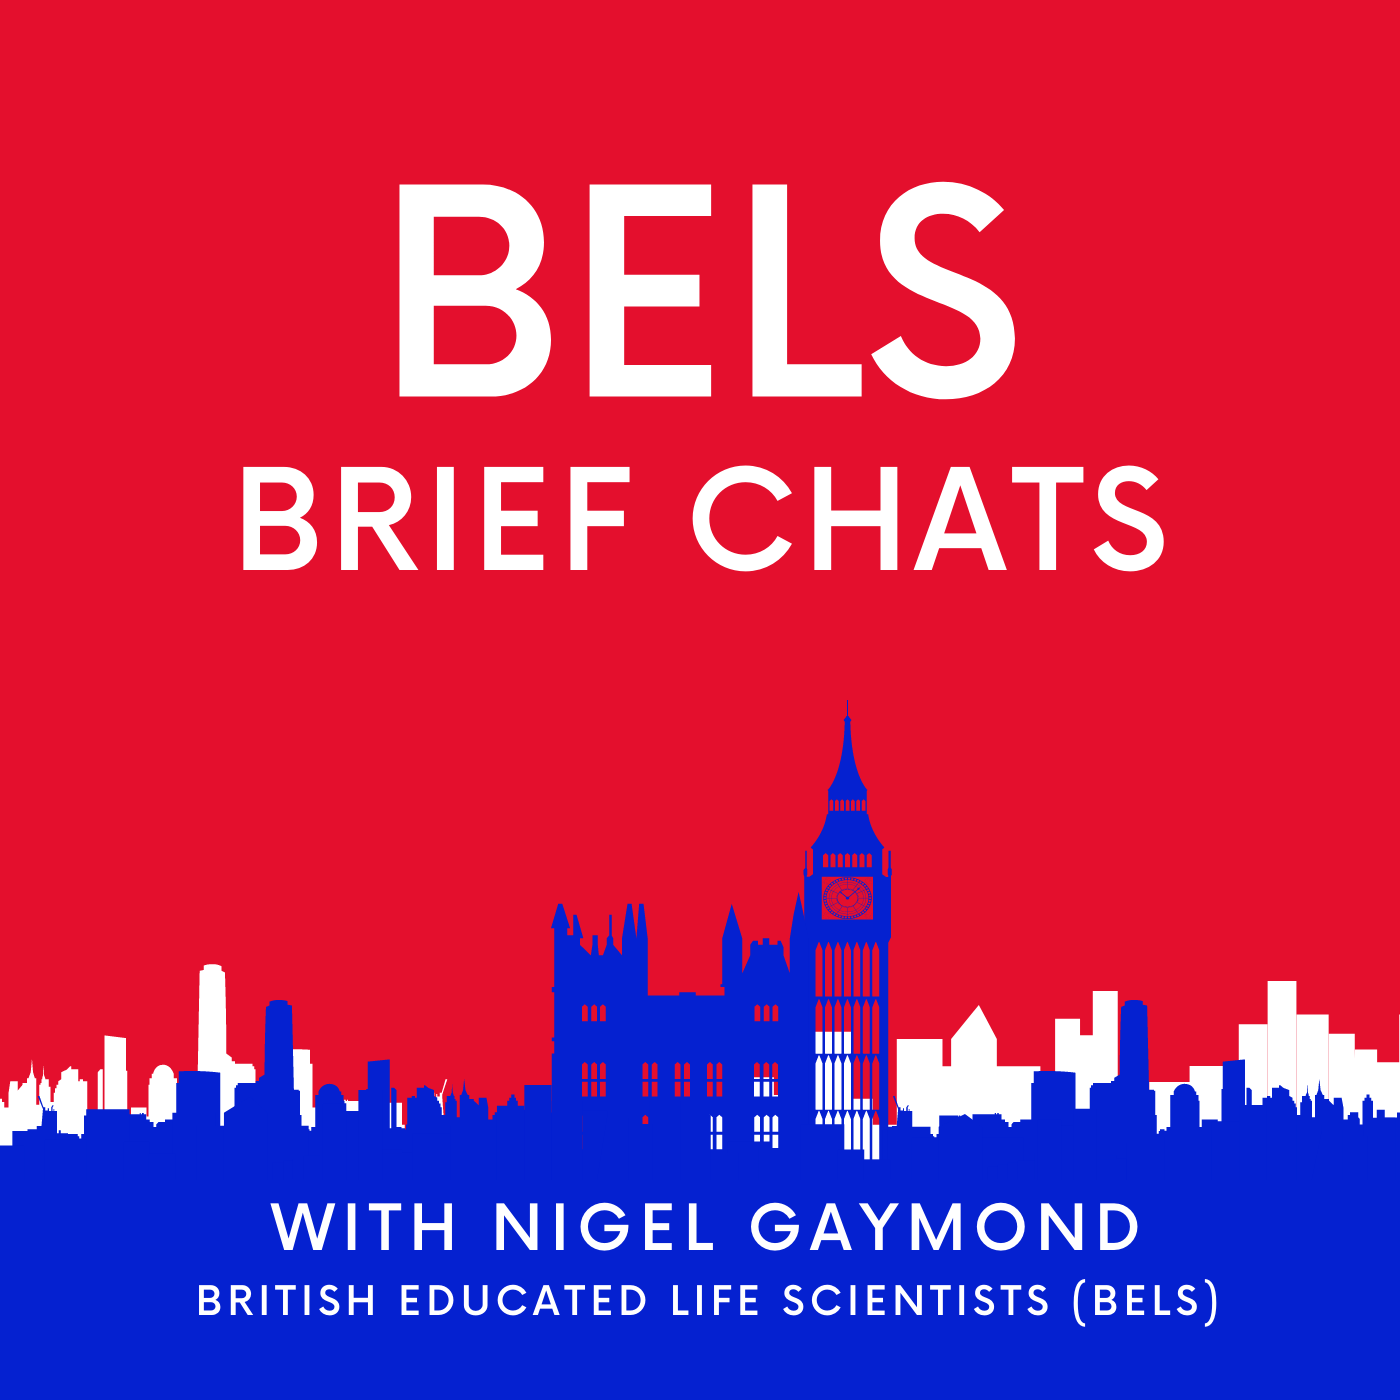 BELS Brief Chats podcast